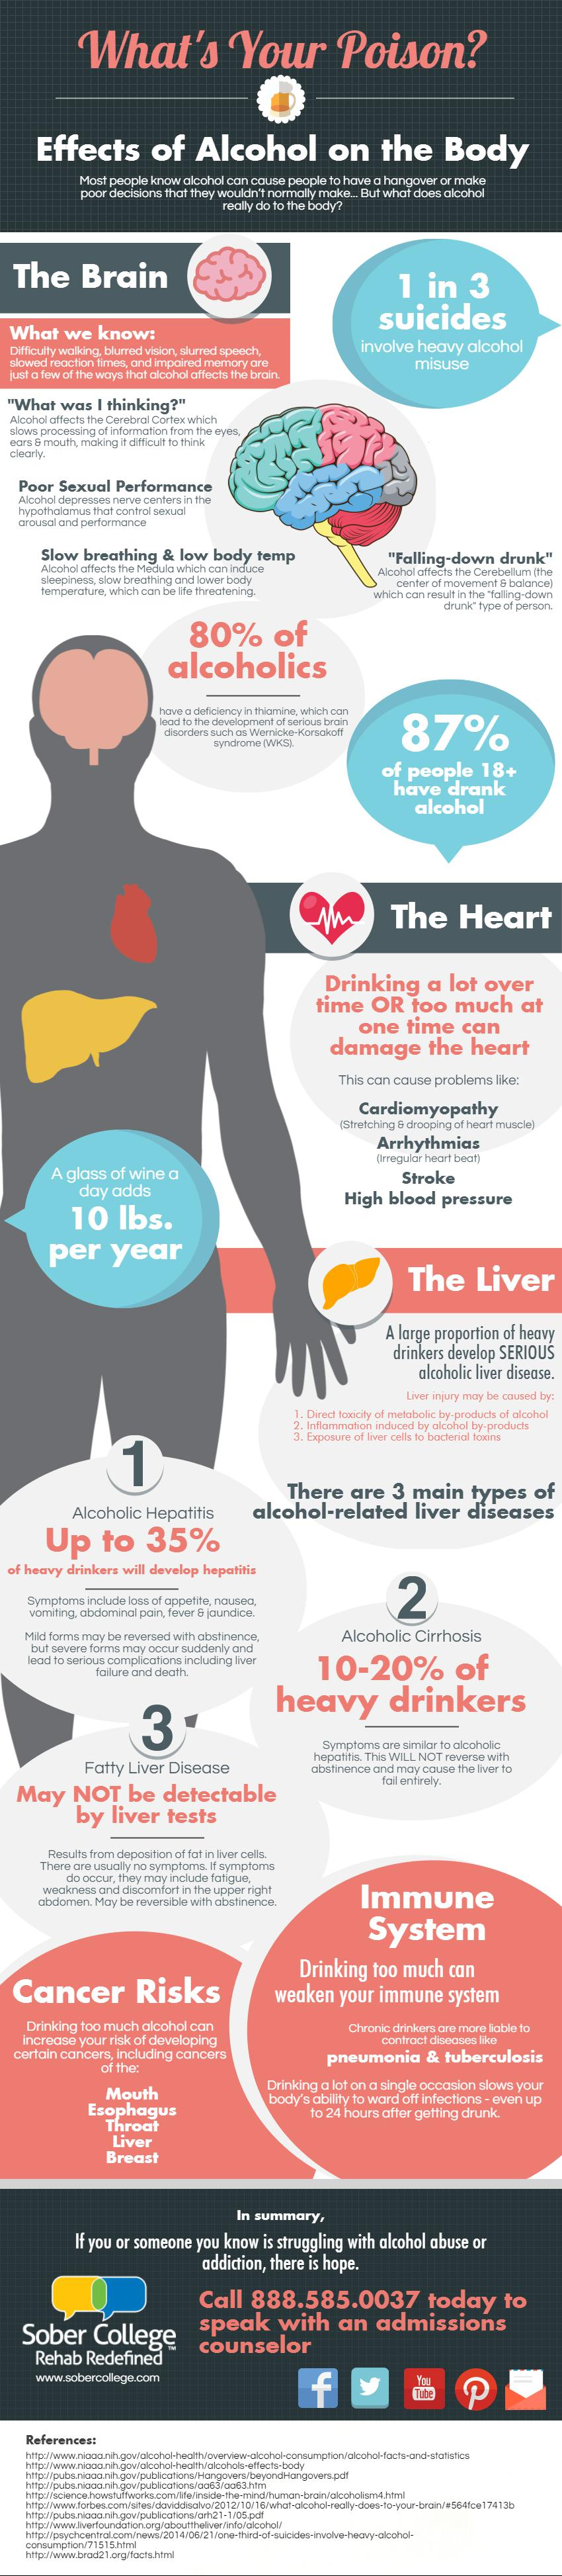 effects of alcohol on the body infographic sober college effects of alcohol on the body alcohol abuse infographic